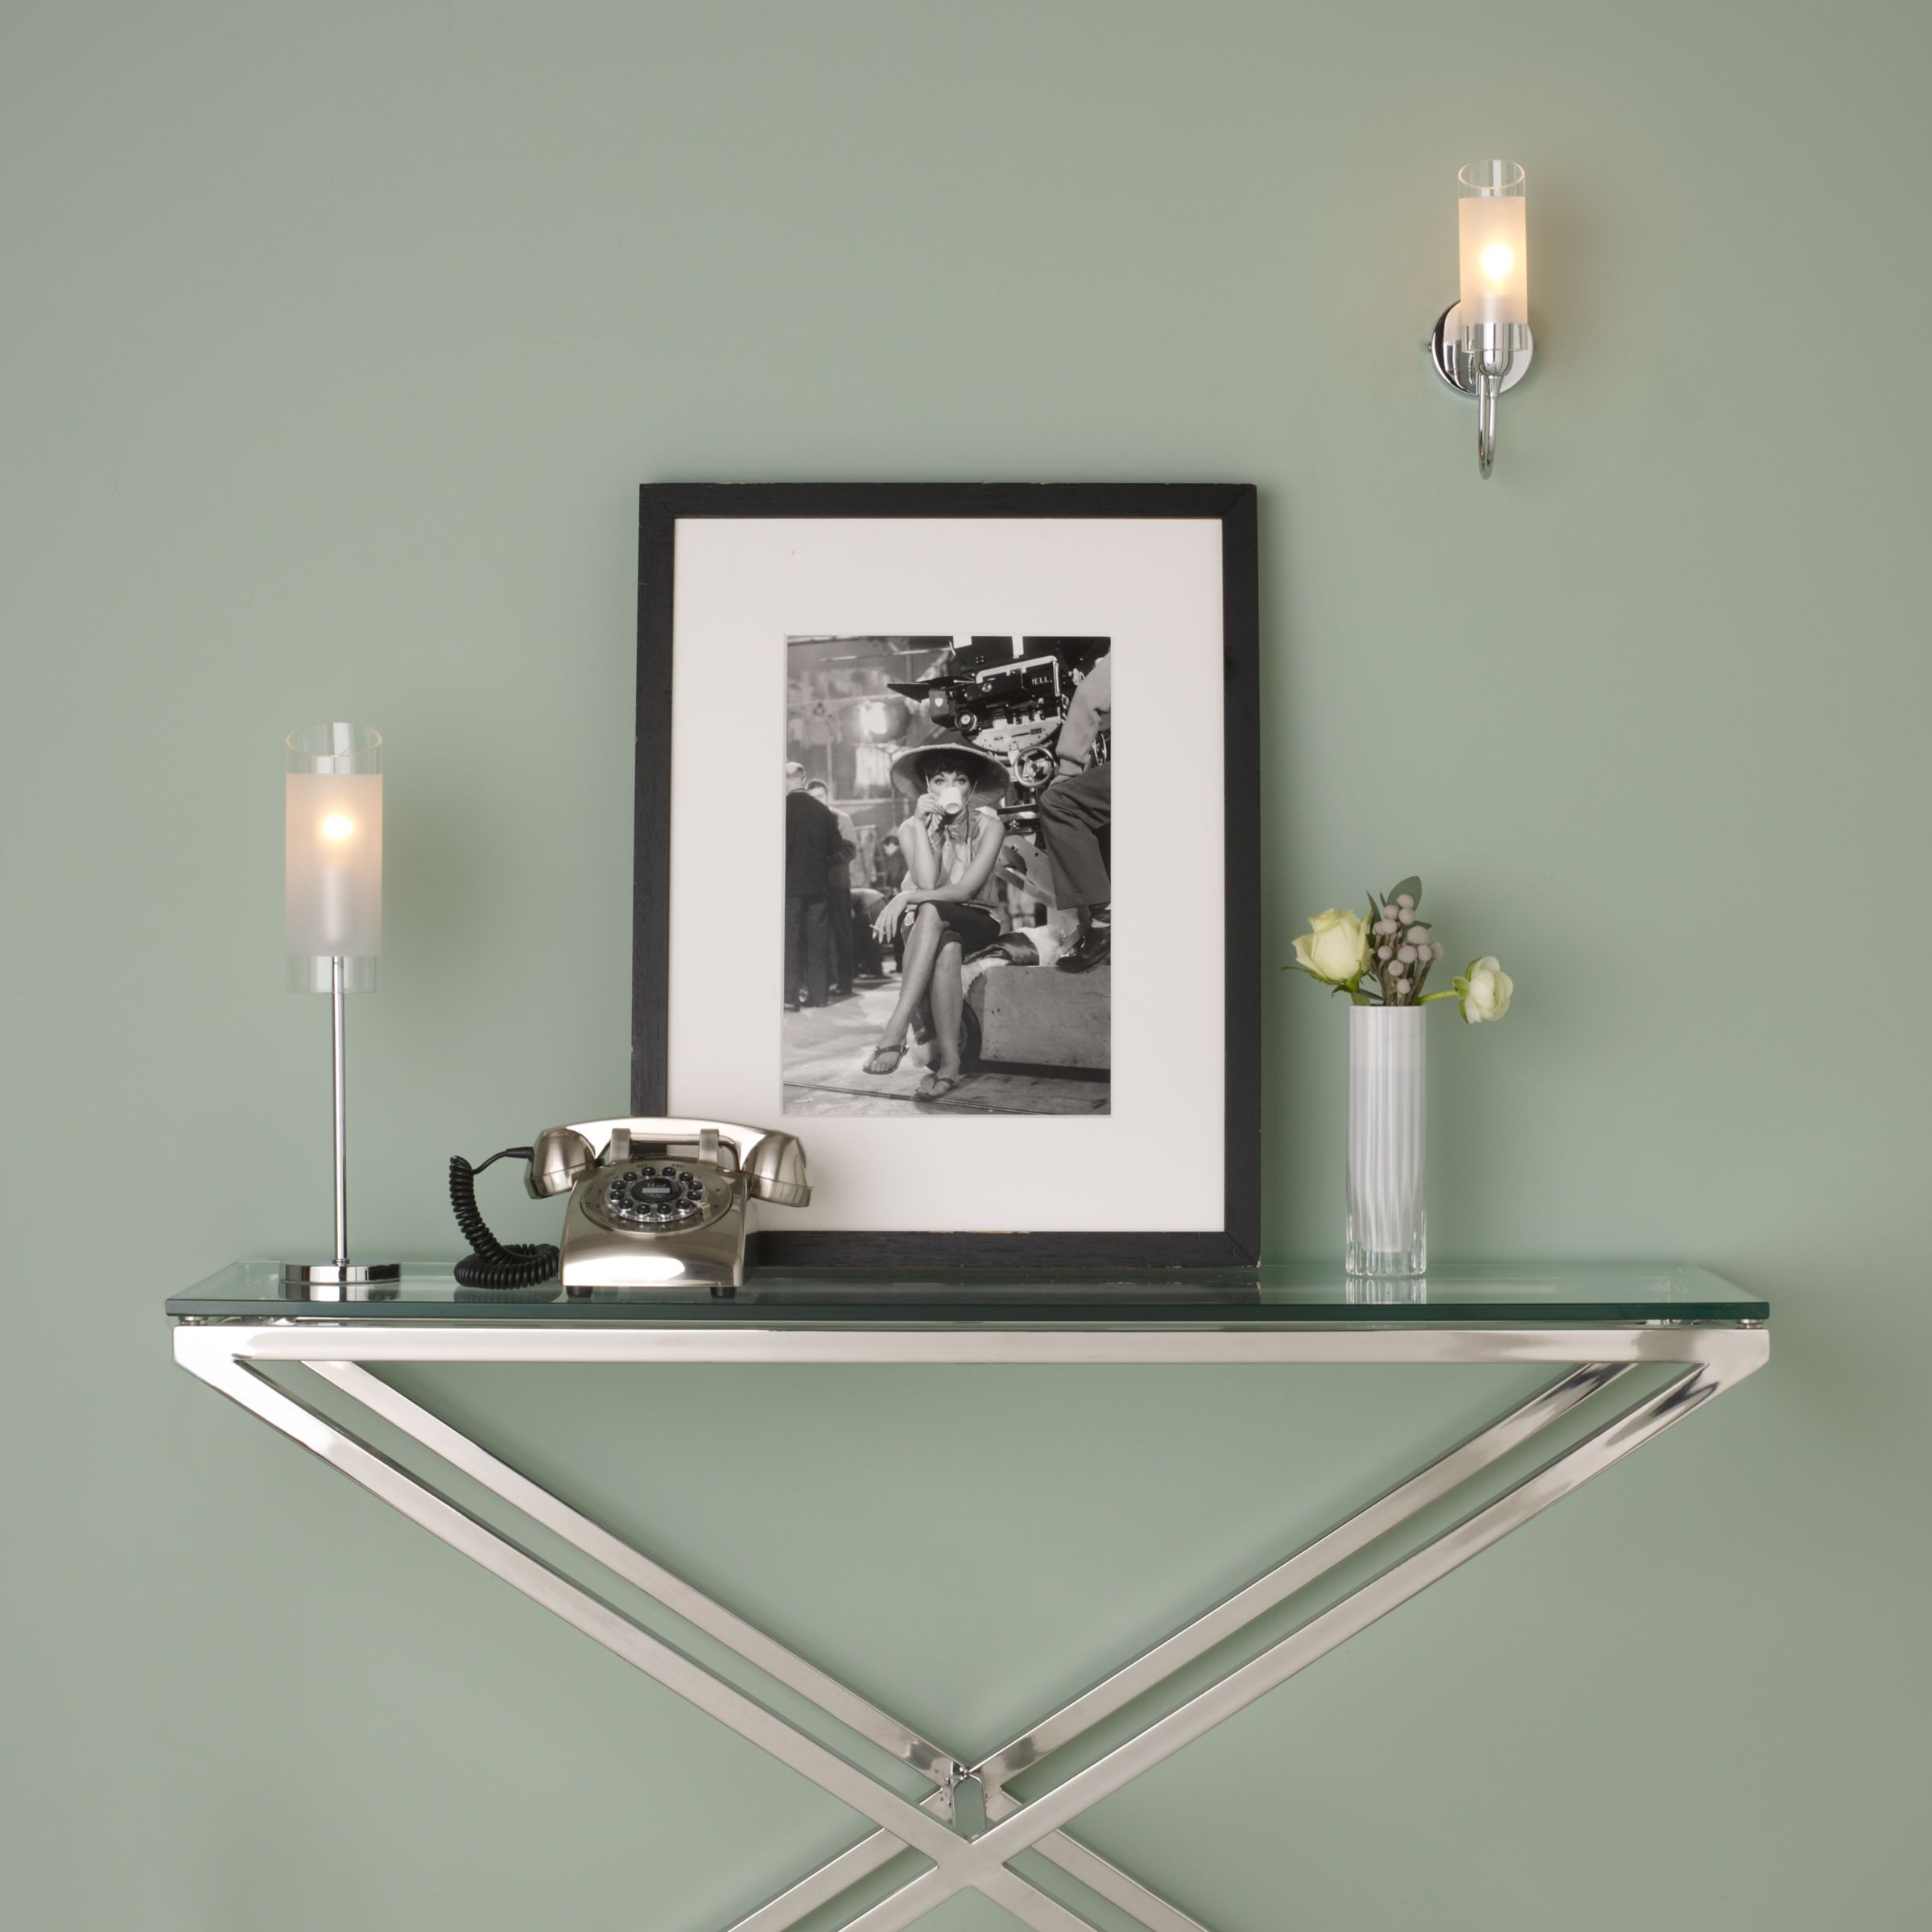 Limbo Wall Light Chrome : Buy John Lewis Limbo Wall Light, Chrome John Lewis